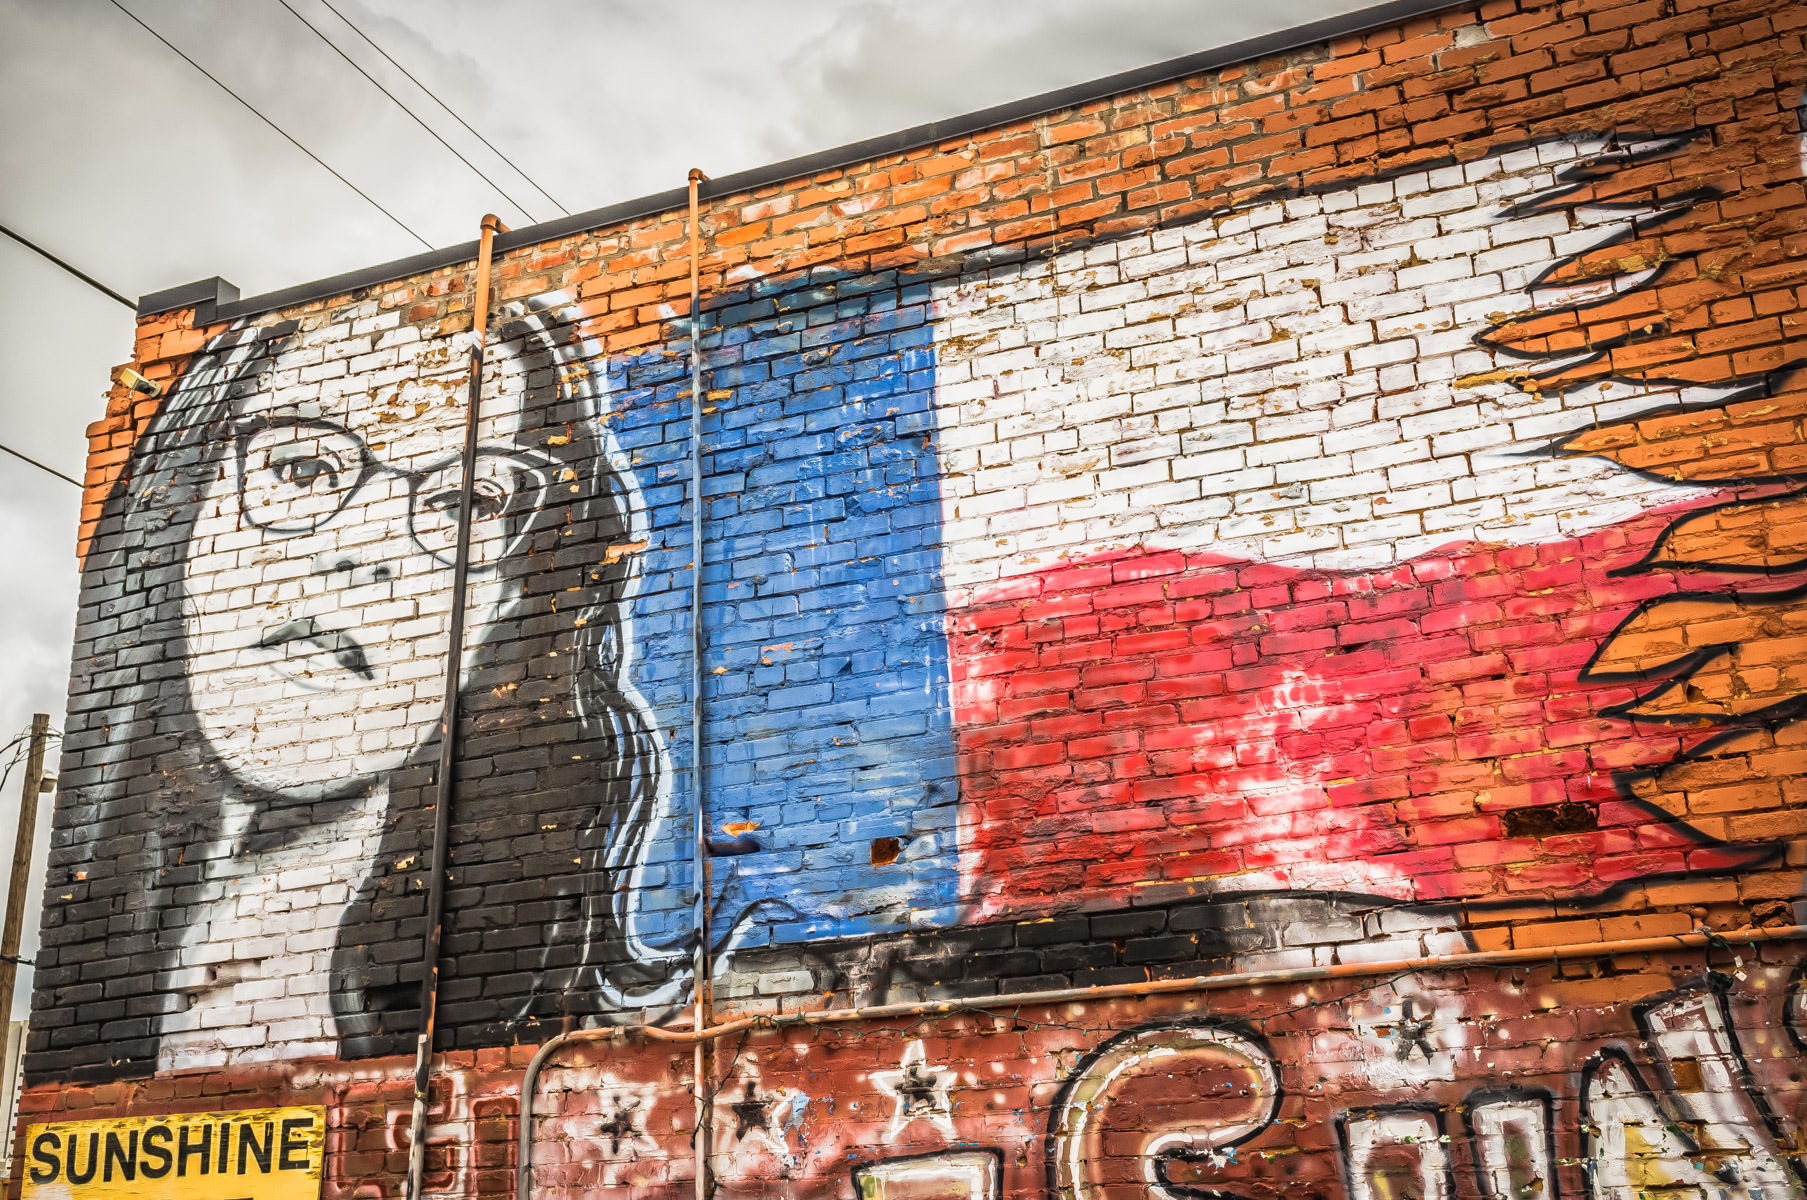 A mural of singer-songwriter Lisa Loeb and a stylized Texas flag, found in Dallas' Deep Ellum neighborhood.